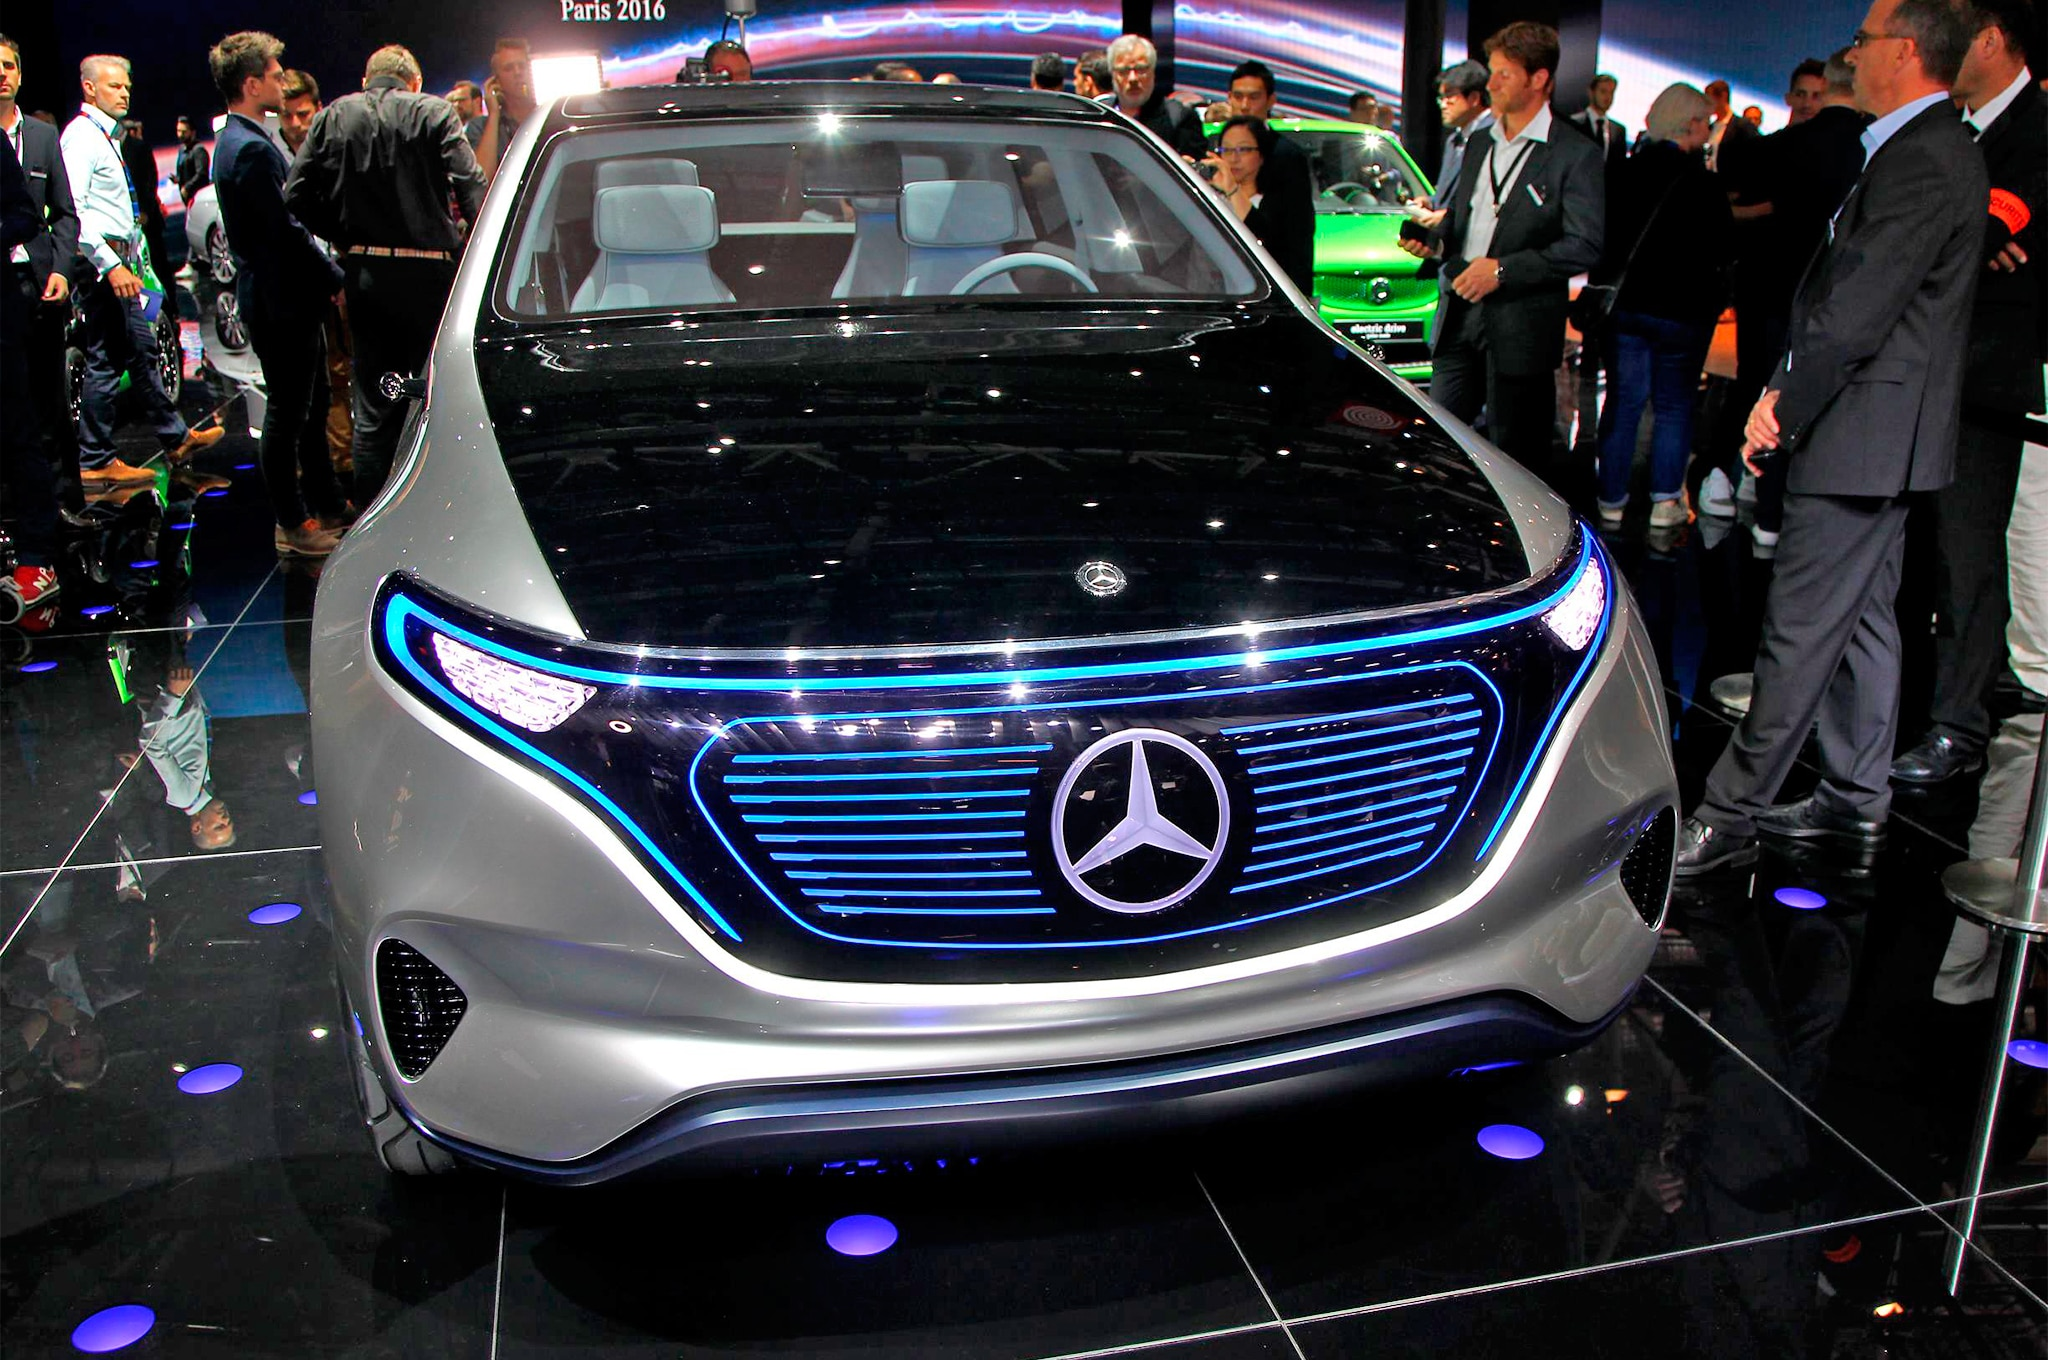 http://st.automobilemag.com/uploads/sites/11/2016/09/Mercedes-Benz-Generation-EQ-concept-front-end-02.jpg